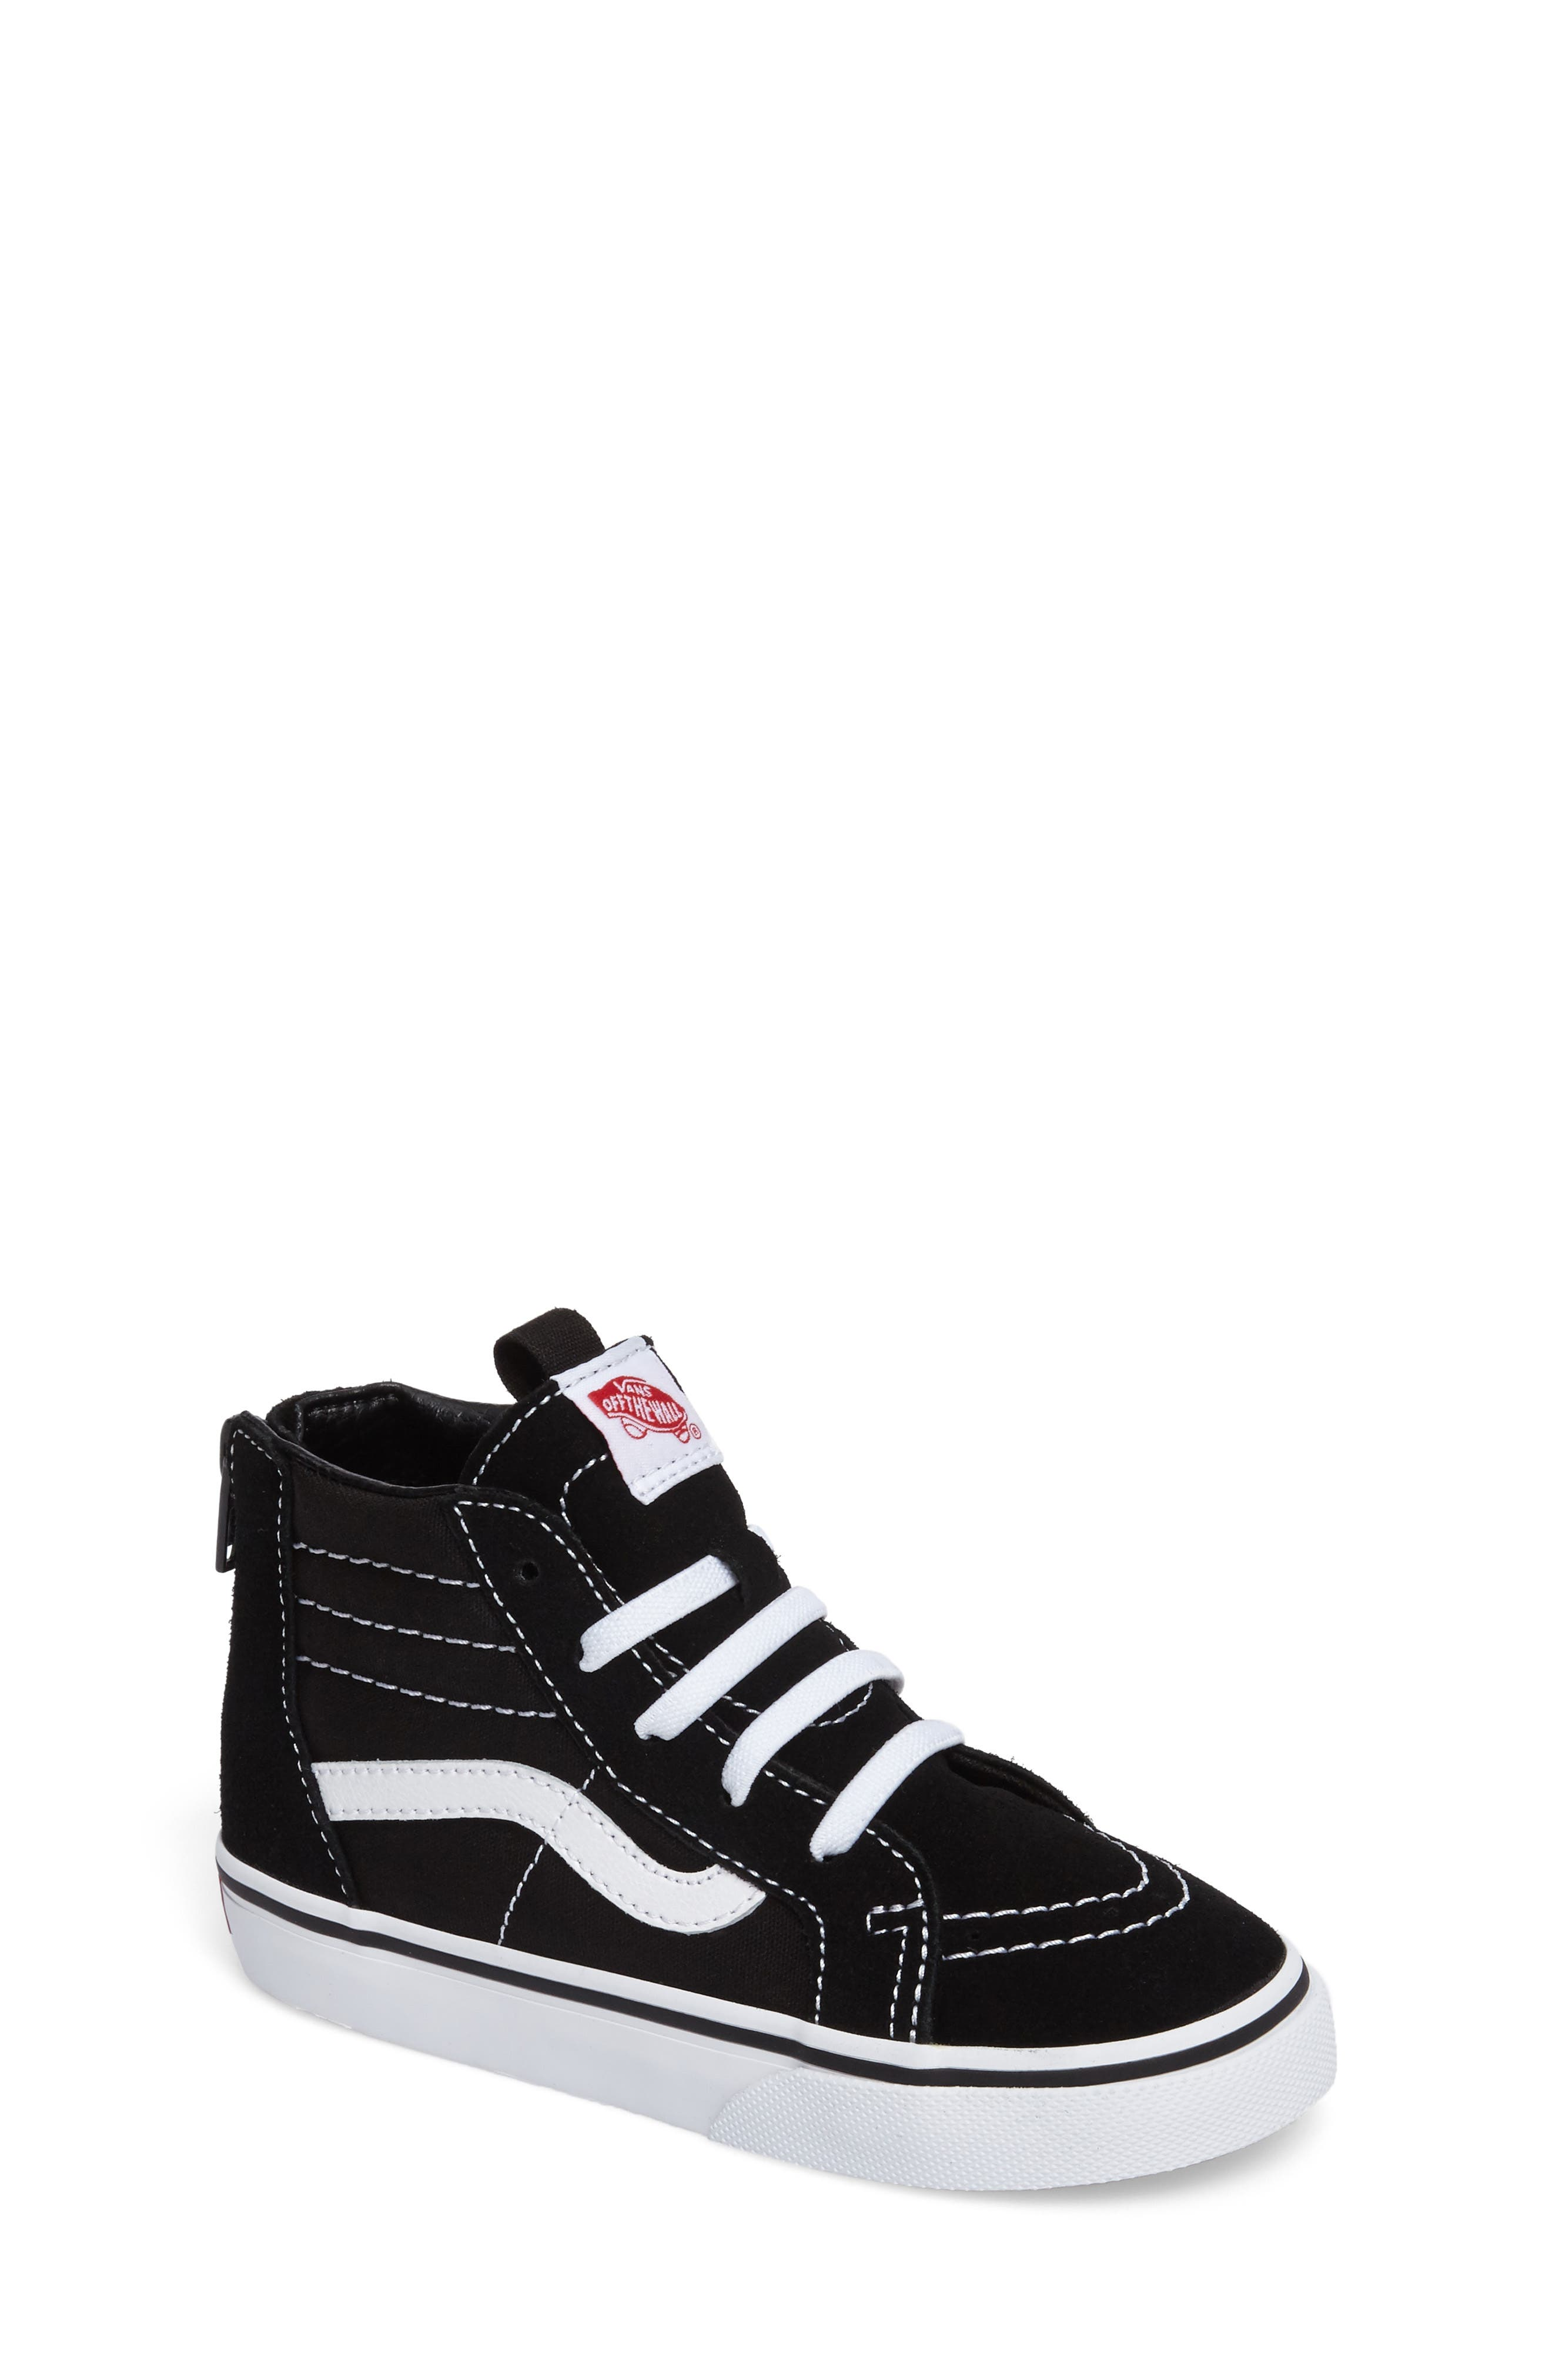 Vans SK8-Hi Zip Sneaker (Baby, Walker, Toddler, Little Kid & Big Kid)